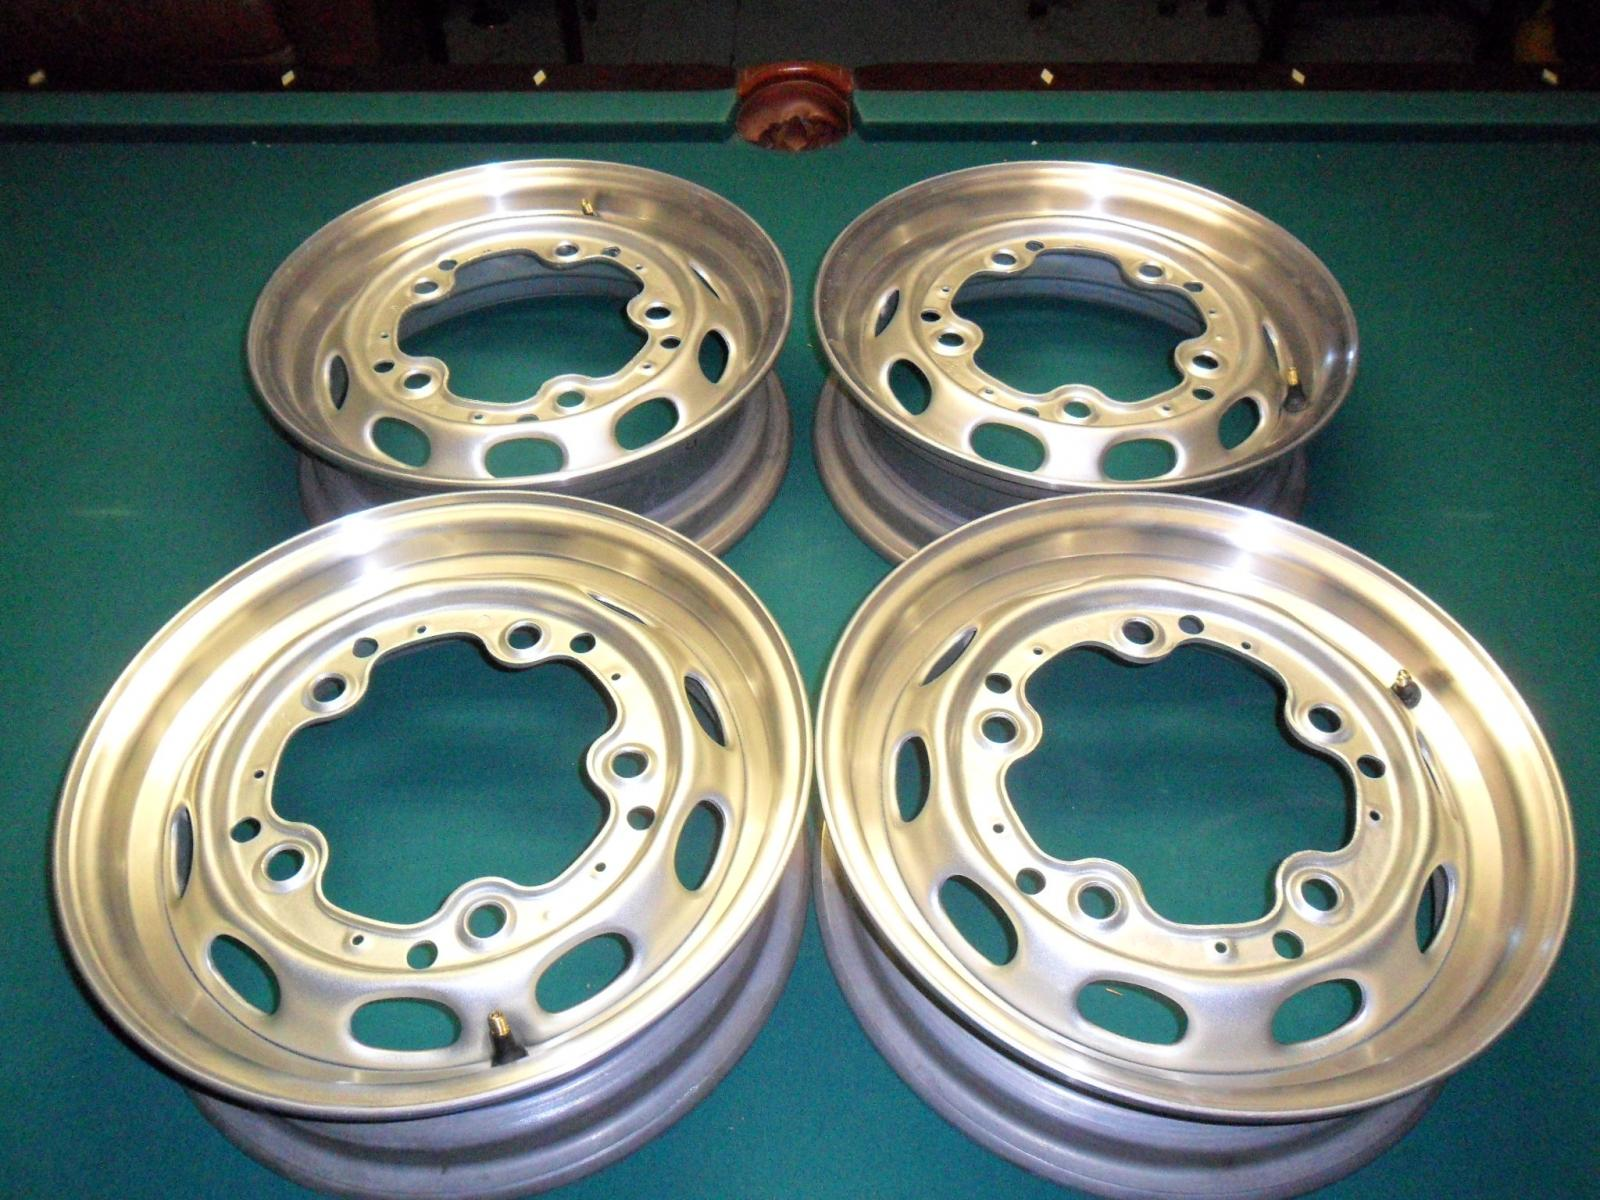 4 1/2 alloy/steel for 60mm drum